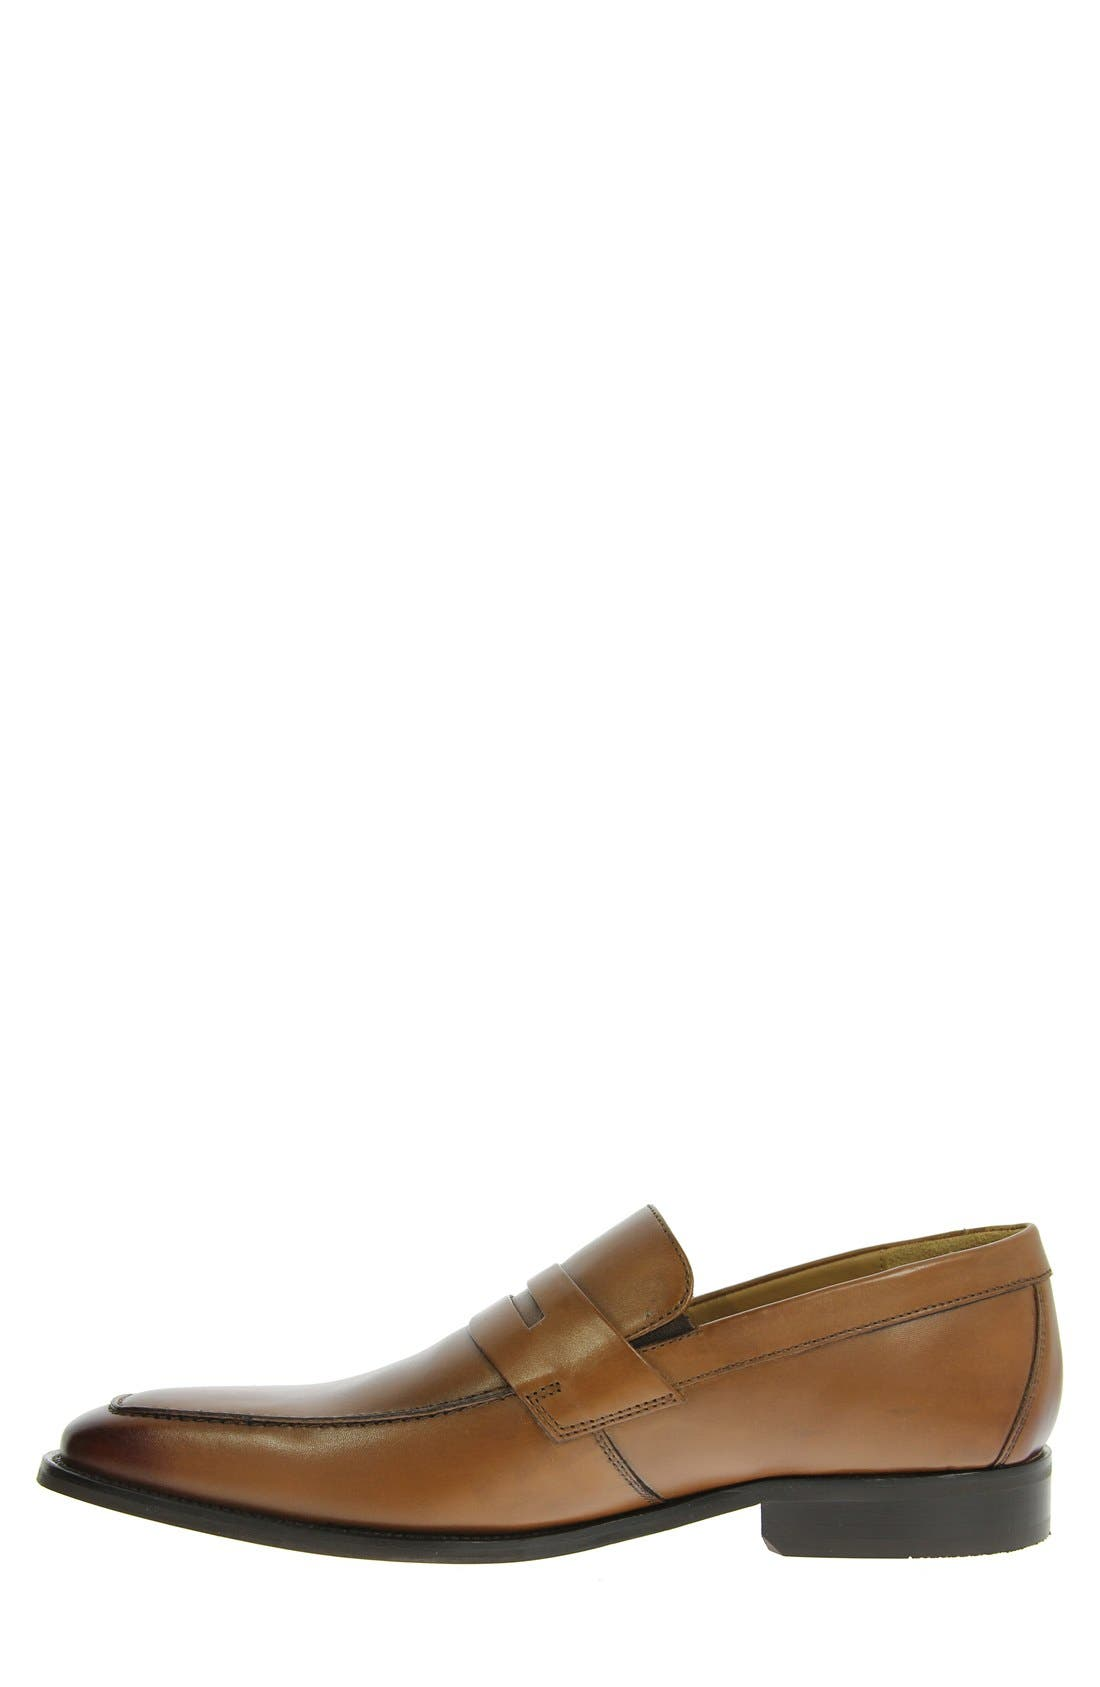 'Sabato' Penny Loafer,                             Alternate thumbnail 4, color,